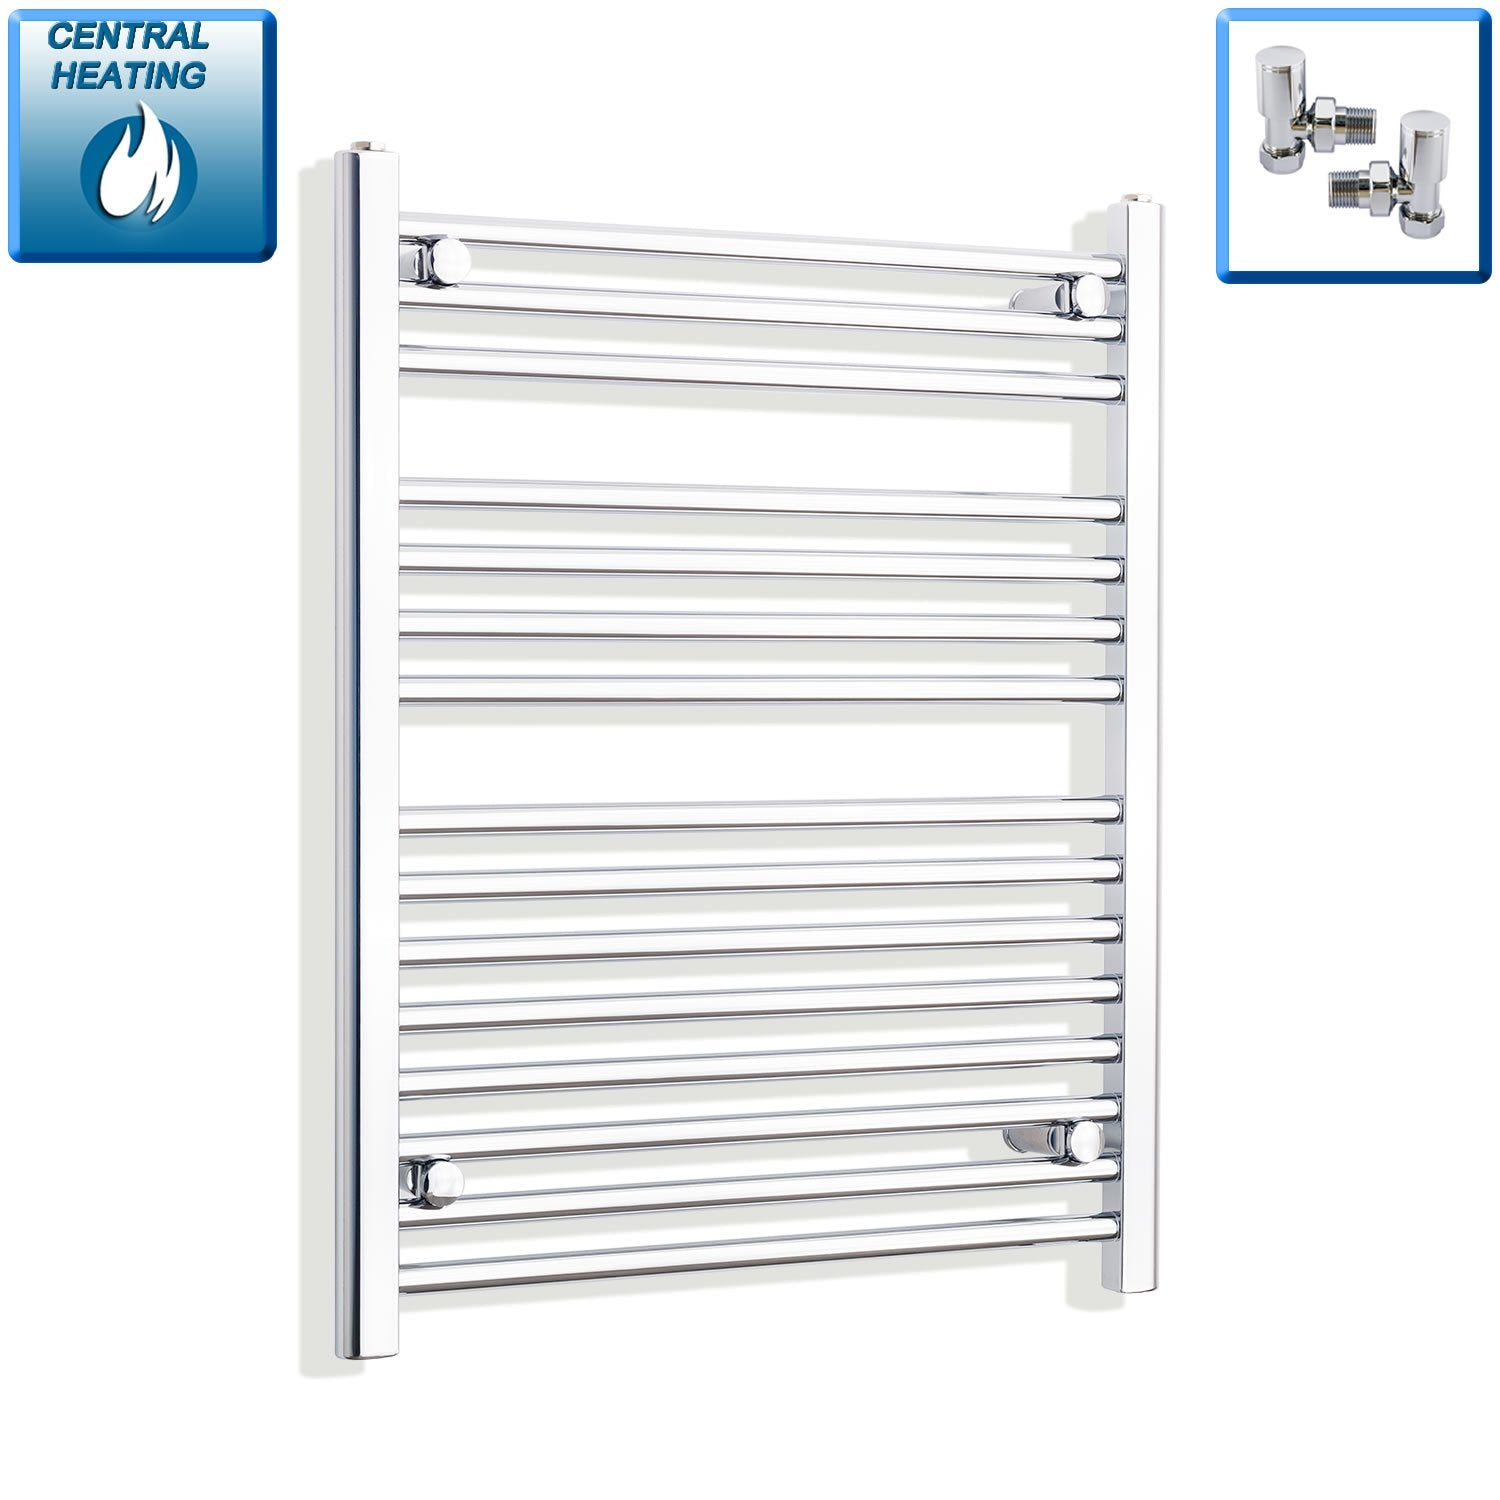 650mm Wide 800mm High Flat Chrome Heated Towel Rail Radiator HTR,With Angled Valve